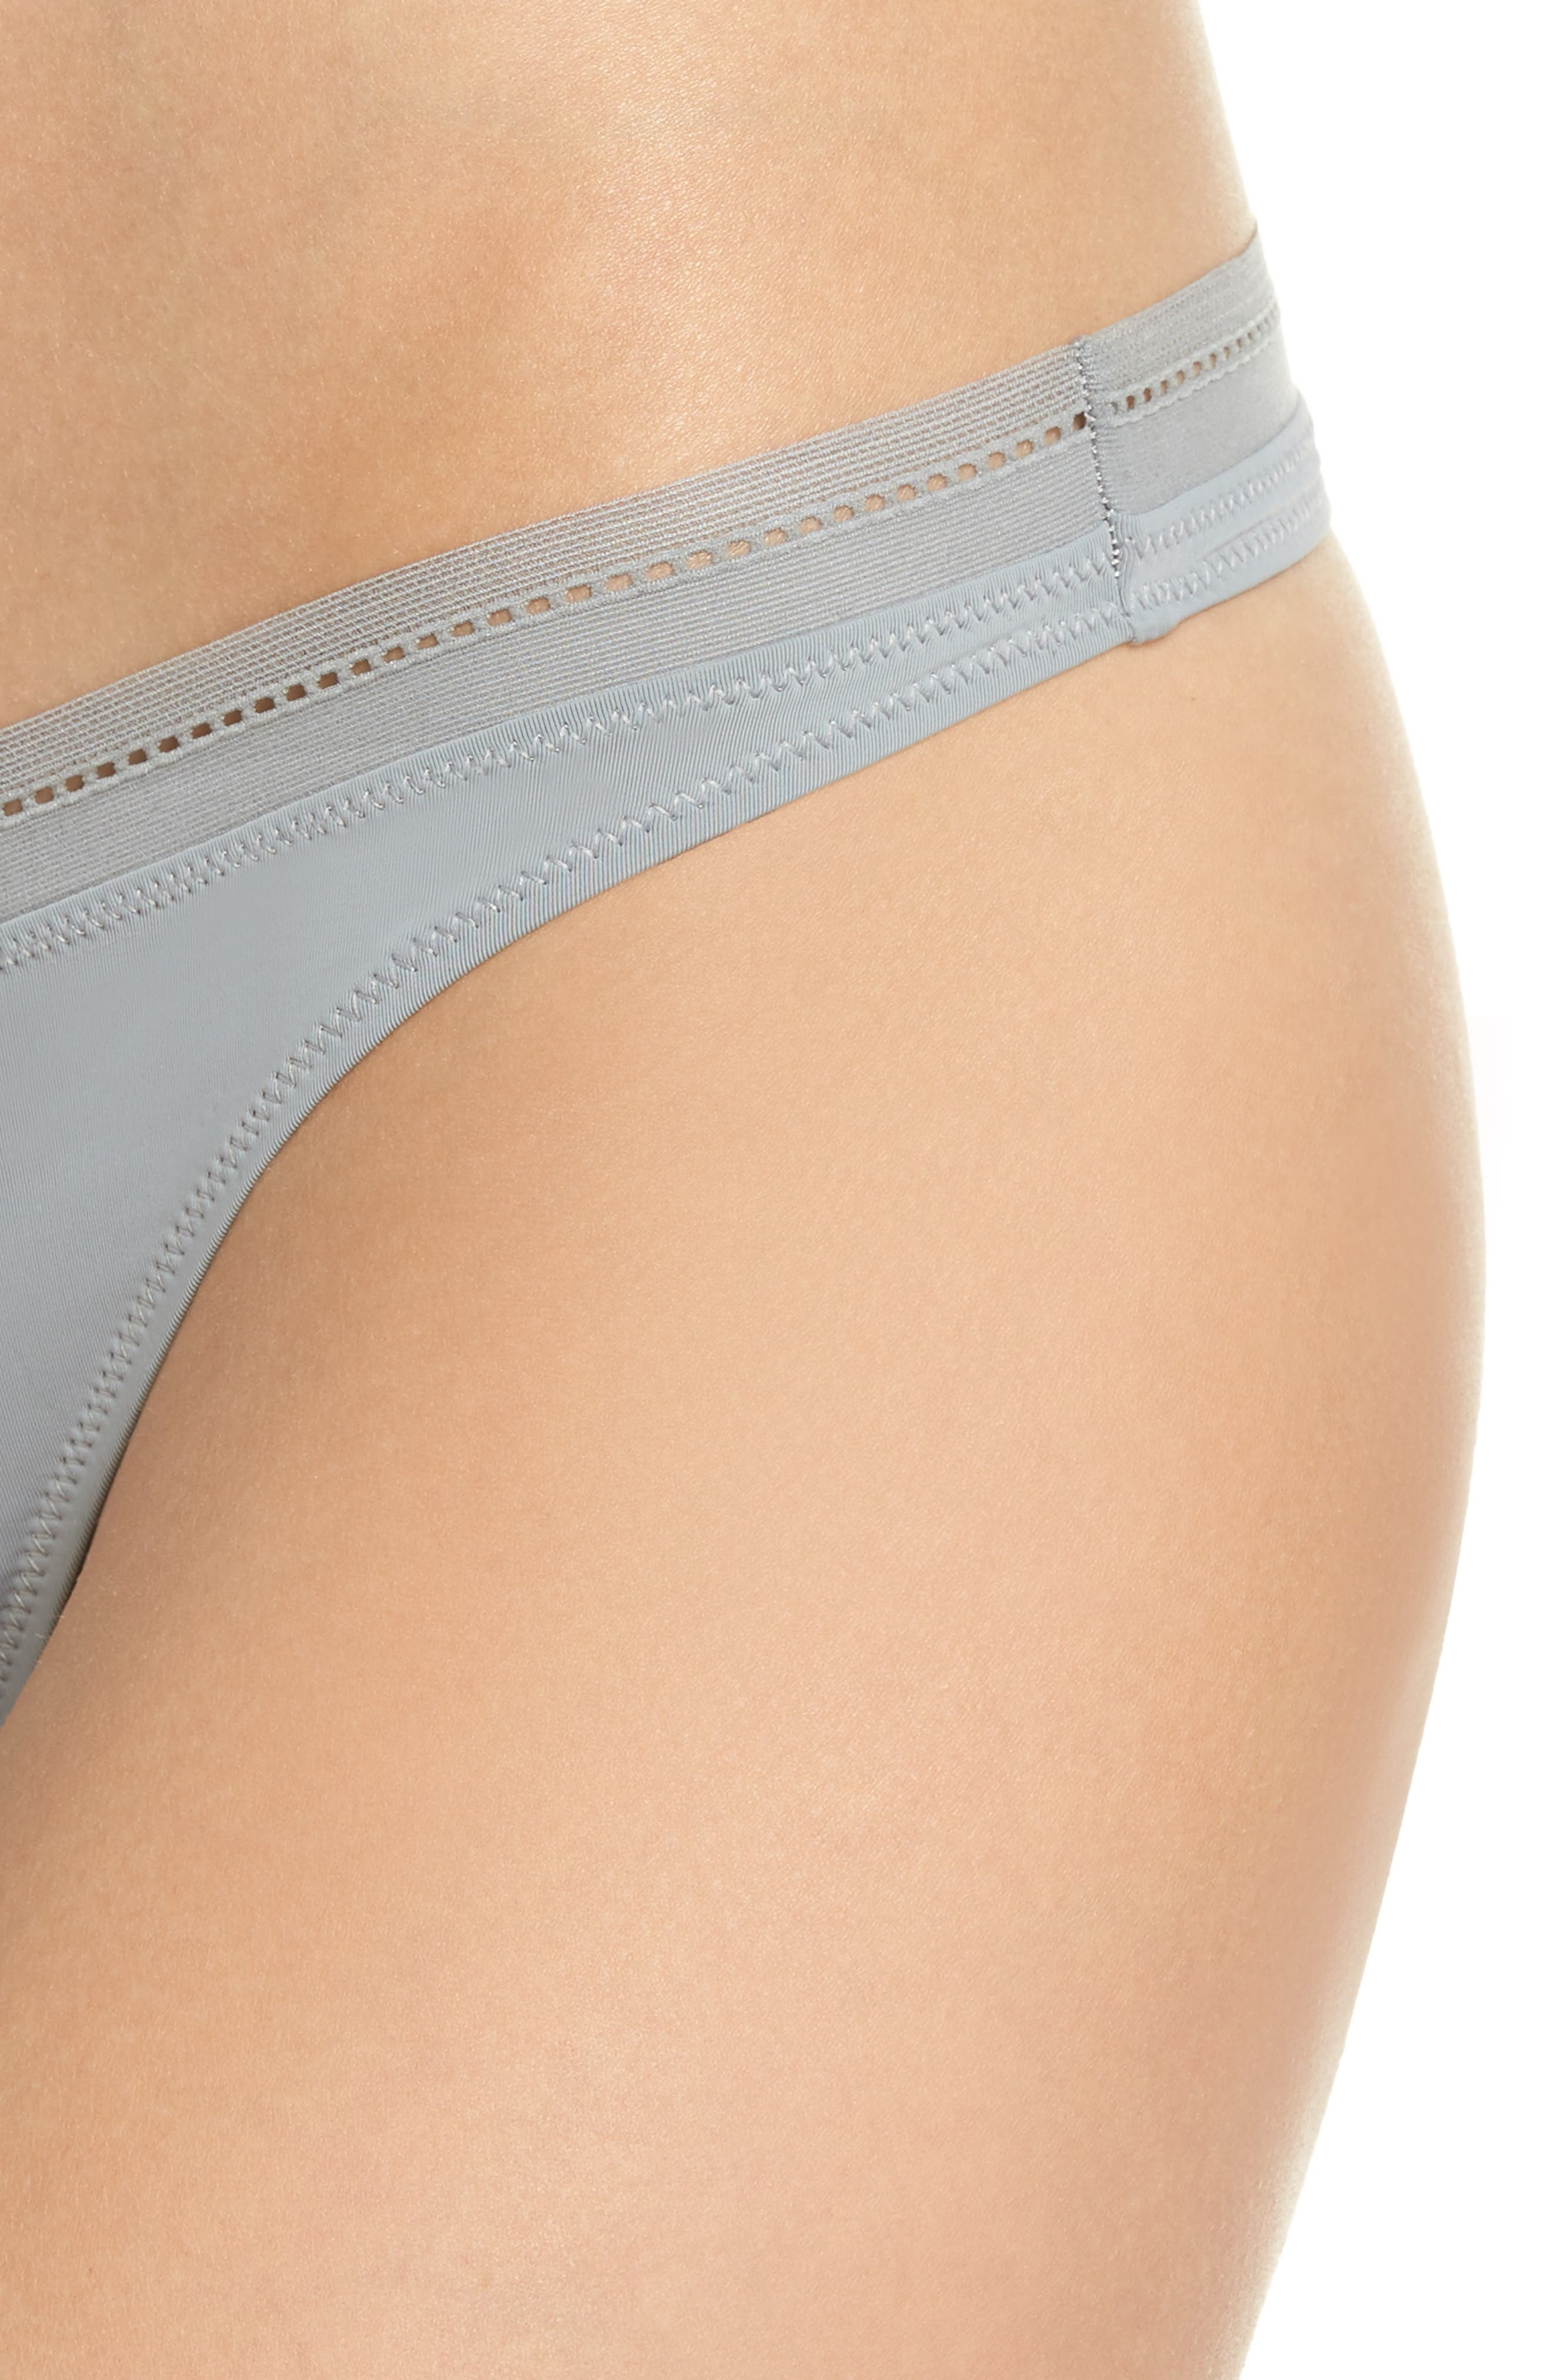 Intimately FP Truth or Dare Thong,                             Alternate thumbnail 23, color,